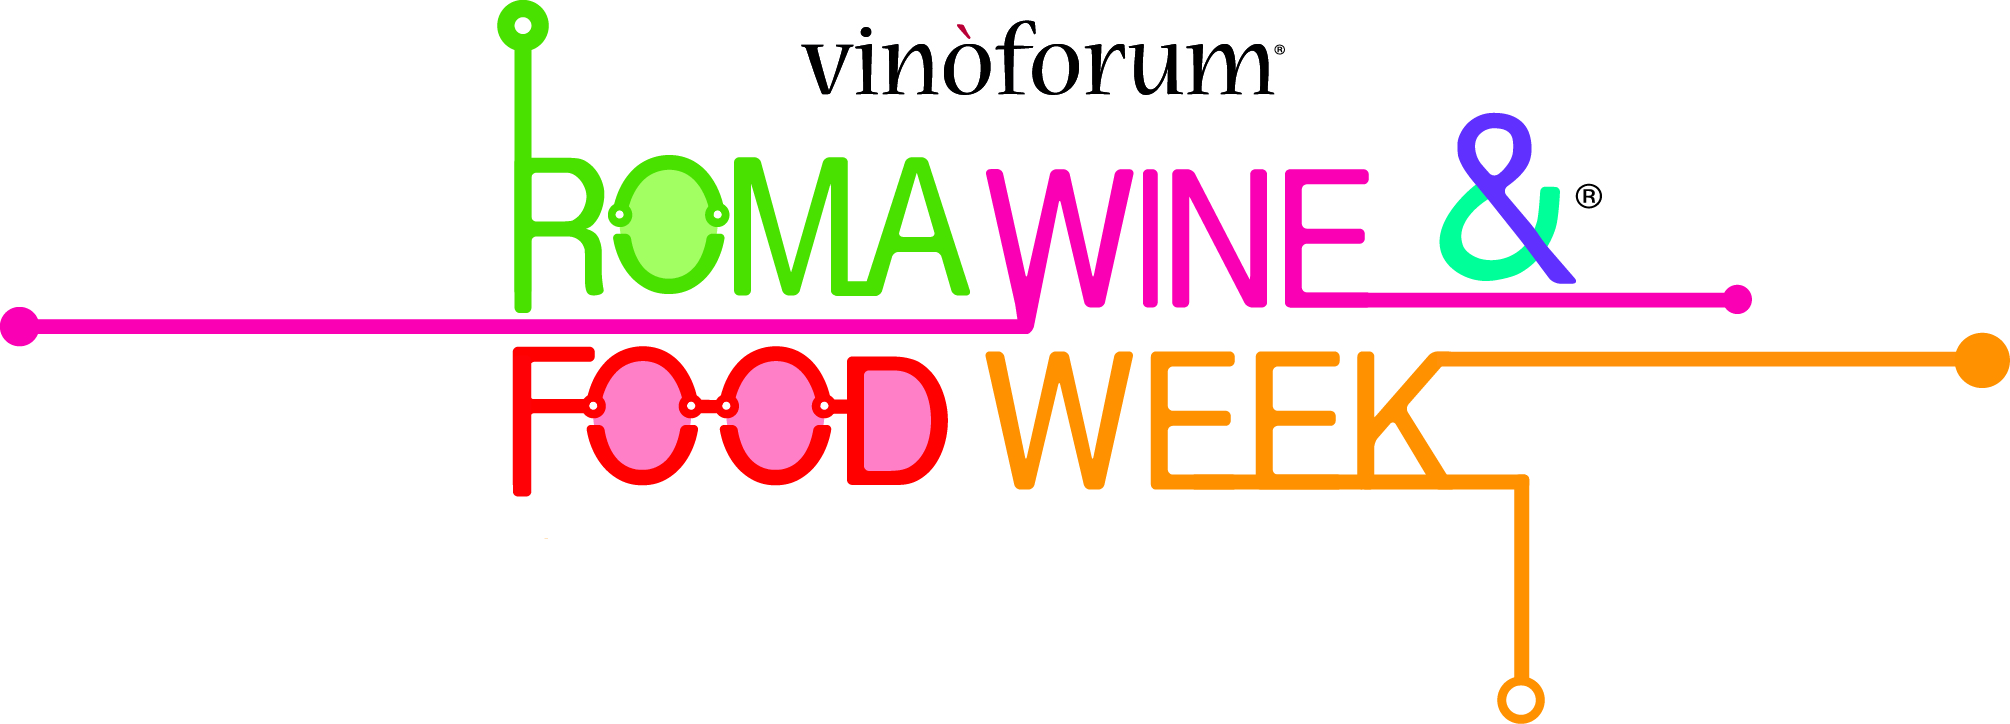 Vinòforum 2015 Roma Wine and Food Week dal 5 al 11 giugno